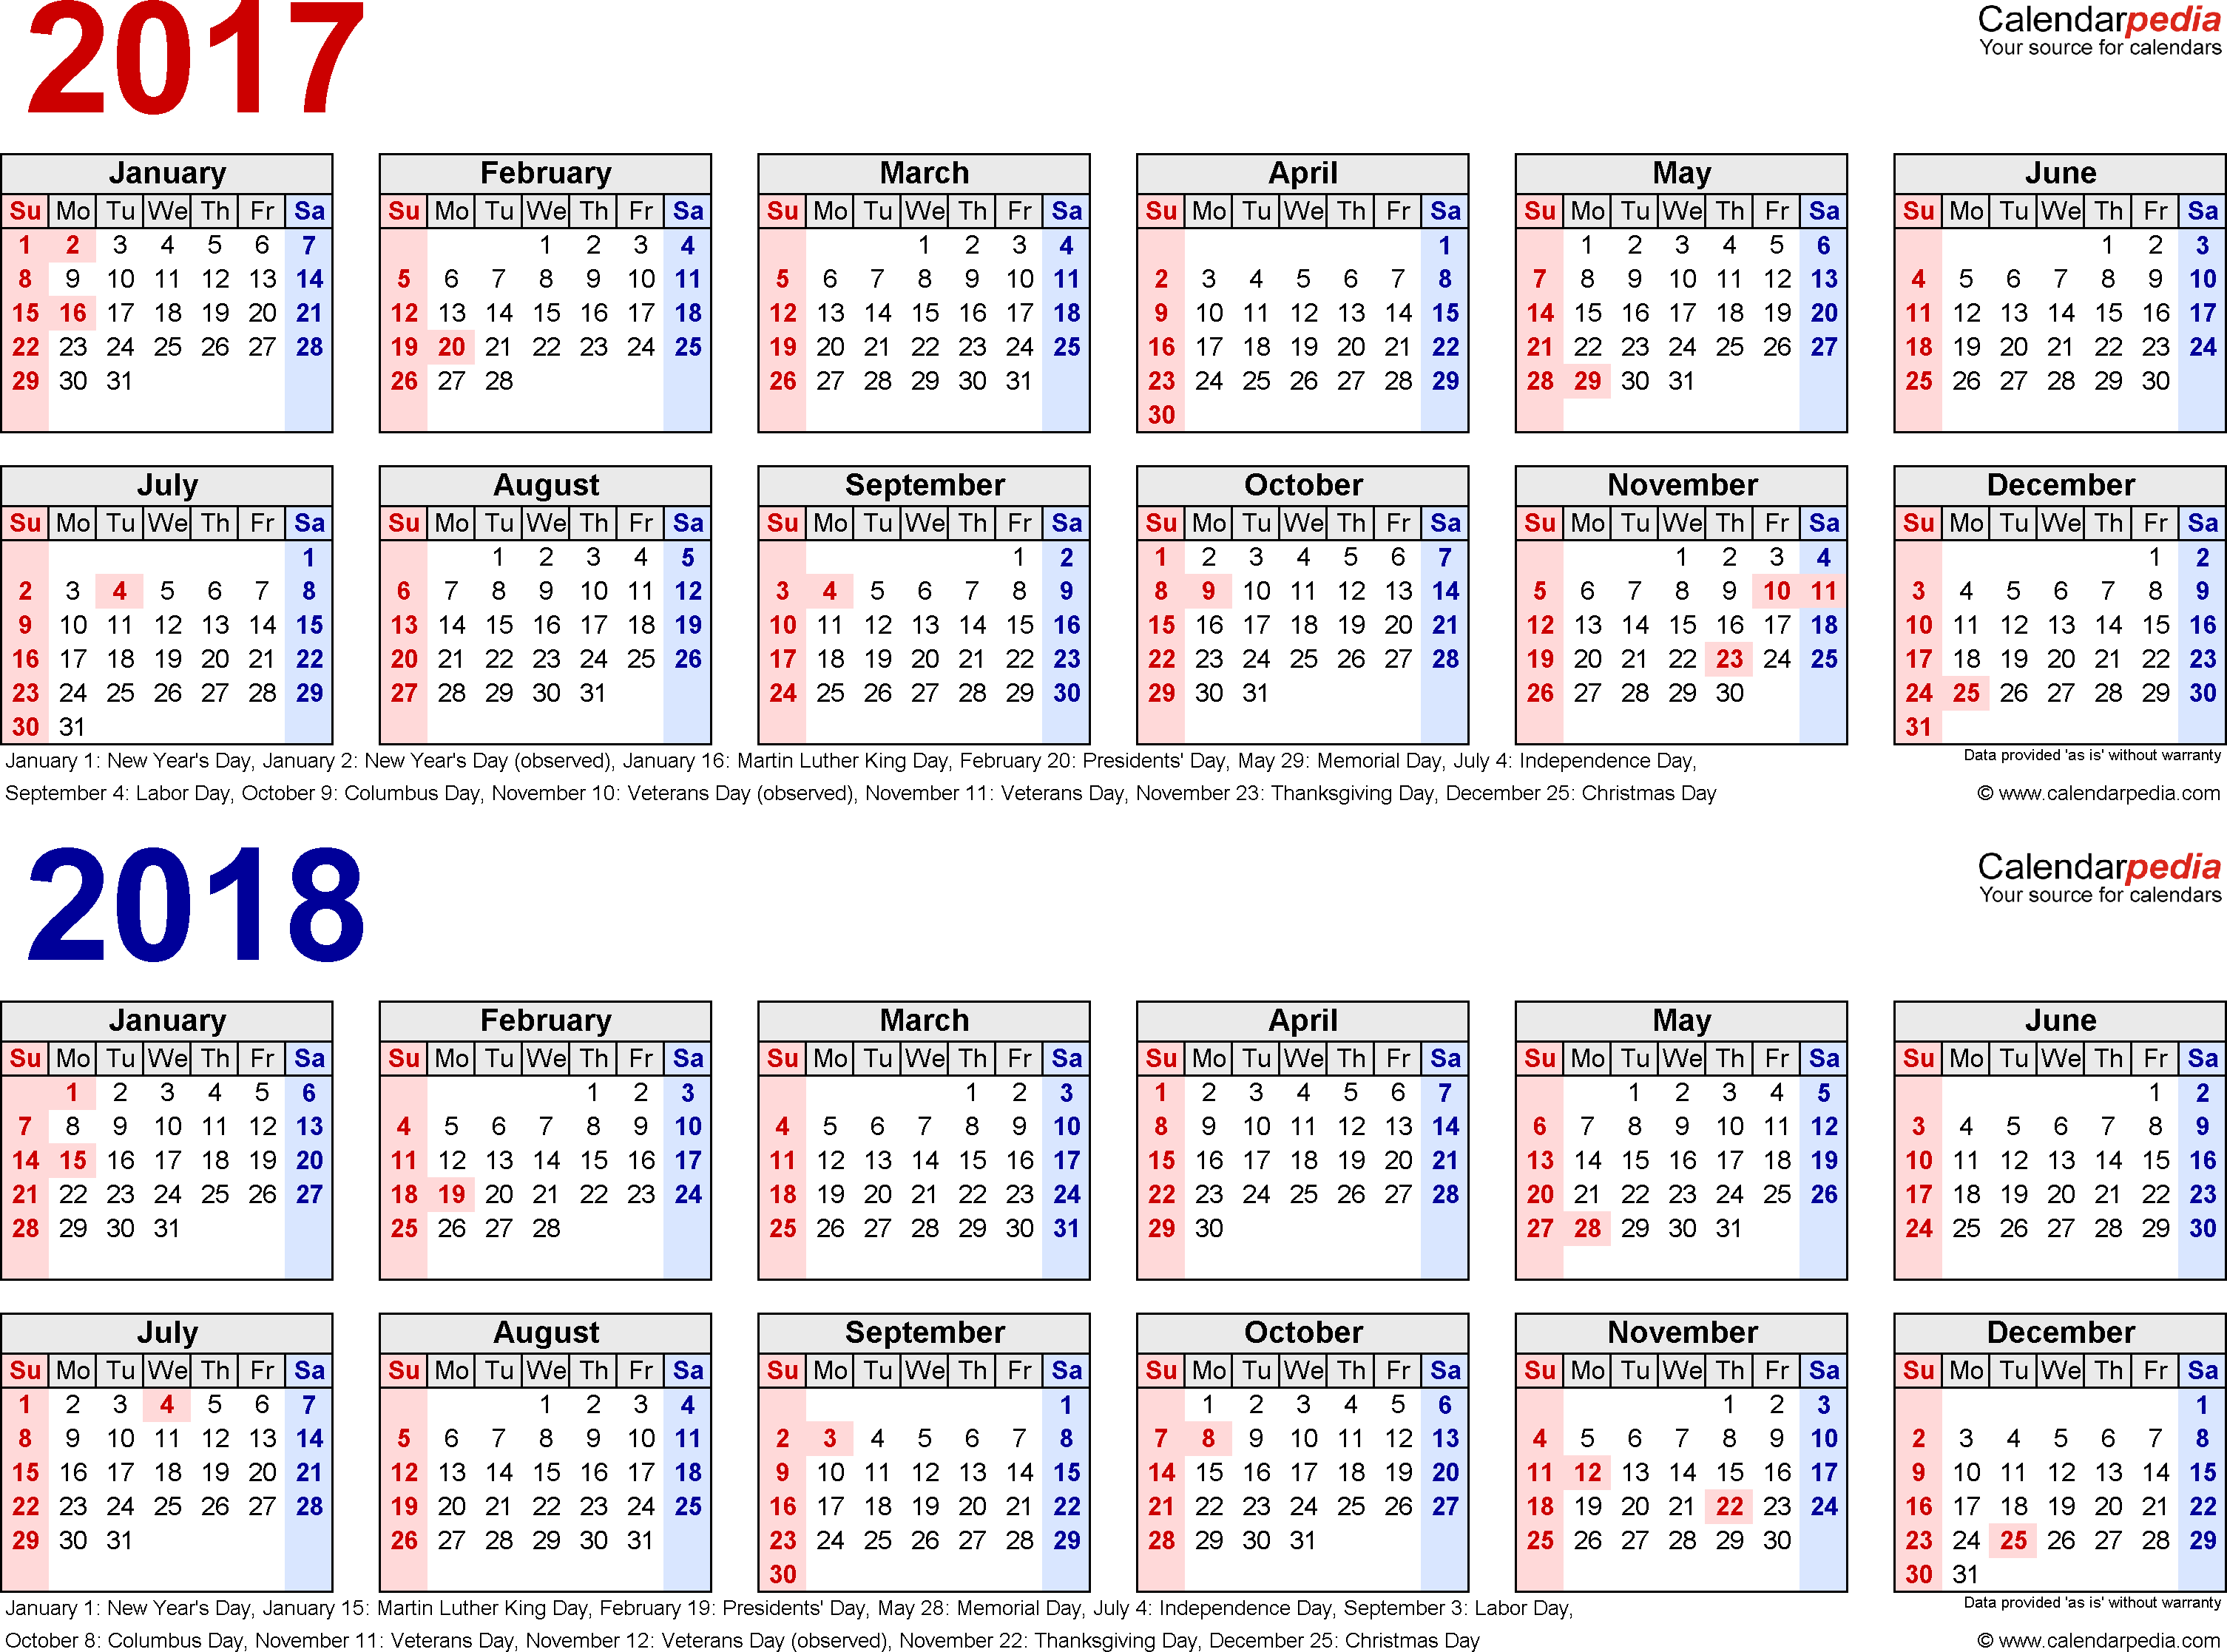 Template 1: PDF template for two year calendar 2017/2018 (landscape orientation, 1 page, in red and blue)